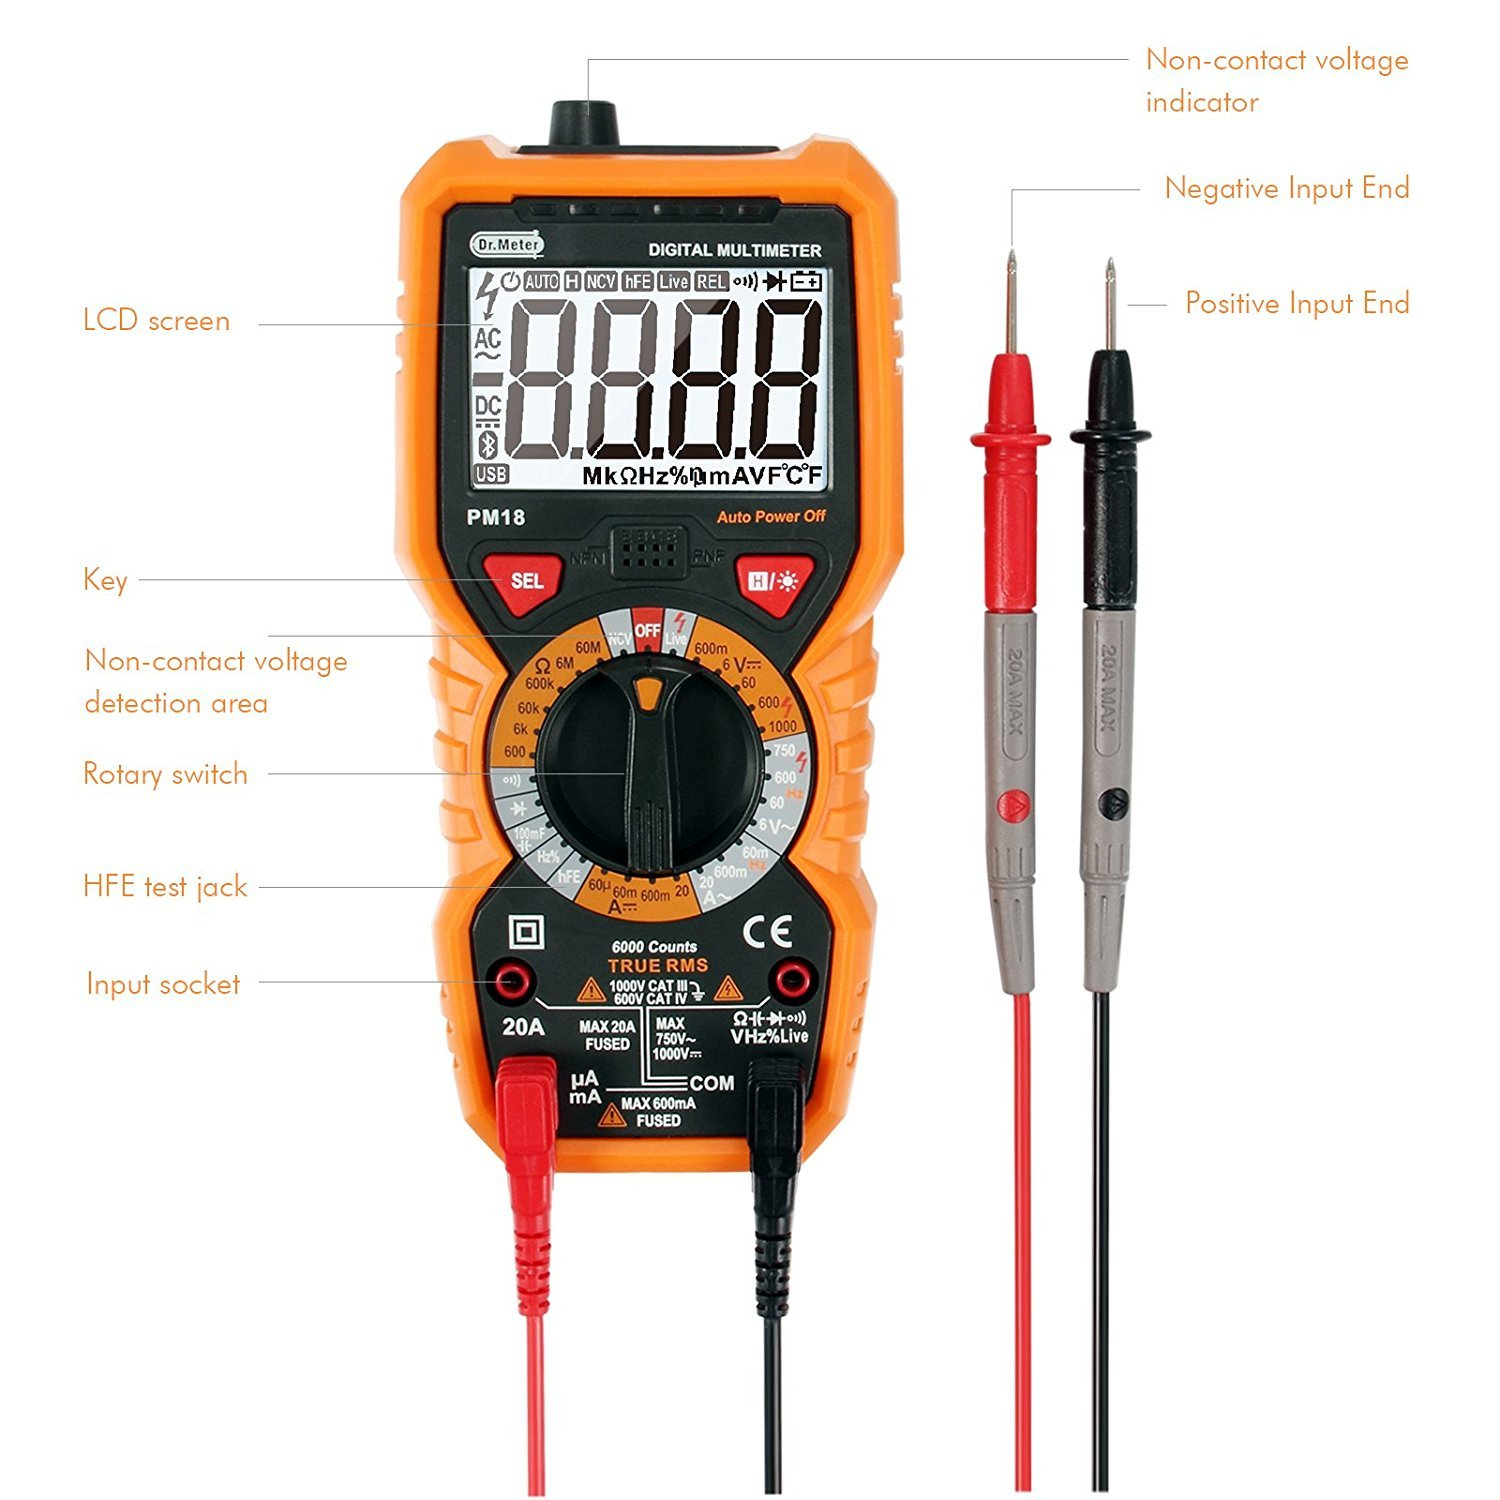 [Digital Multimeters] Dr.meter Digital Multimeter Trms 6000 Counts Tester Non-Contact Voltage Detection Multi Meter, PM18 by Dr.meter (Image #3)